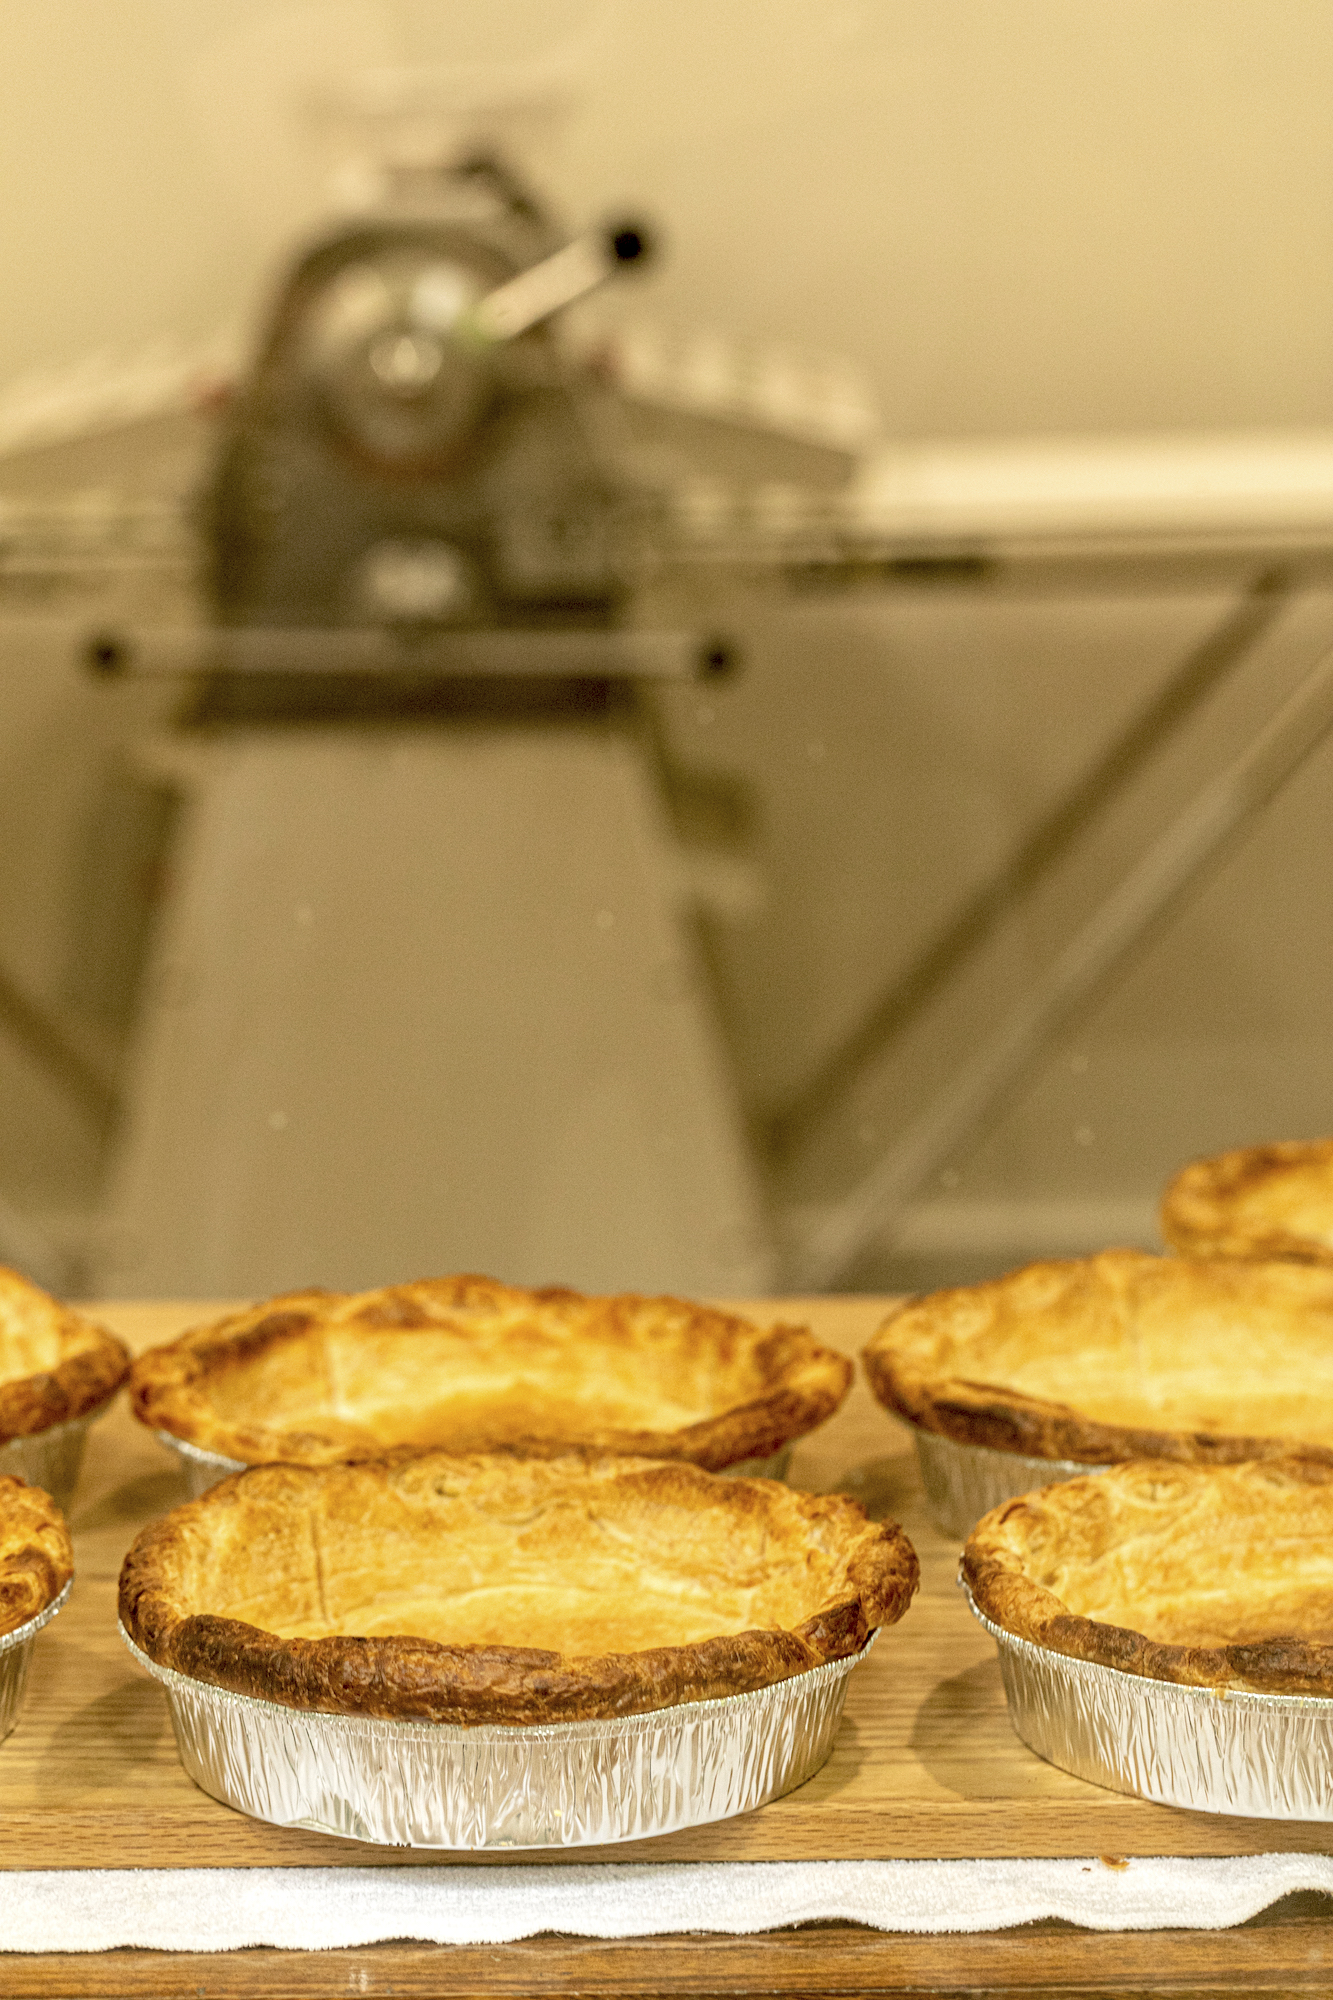 Raeanne Young Sagan bakes every pie by hand